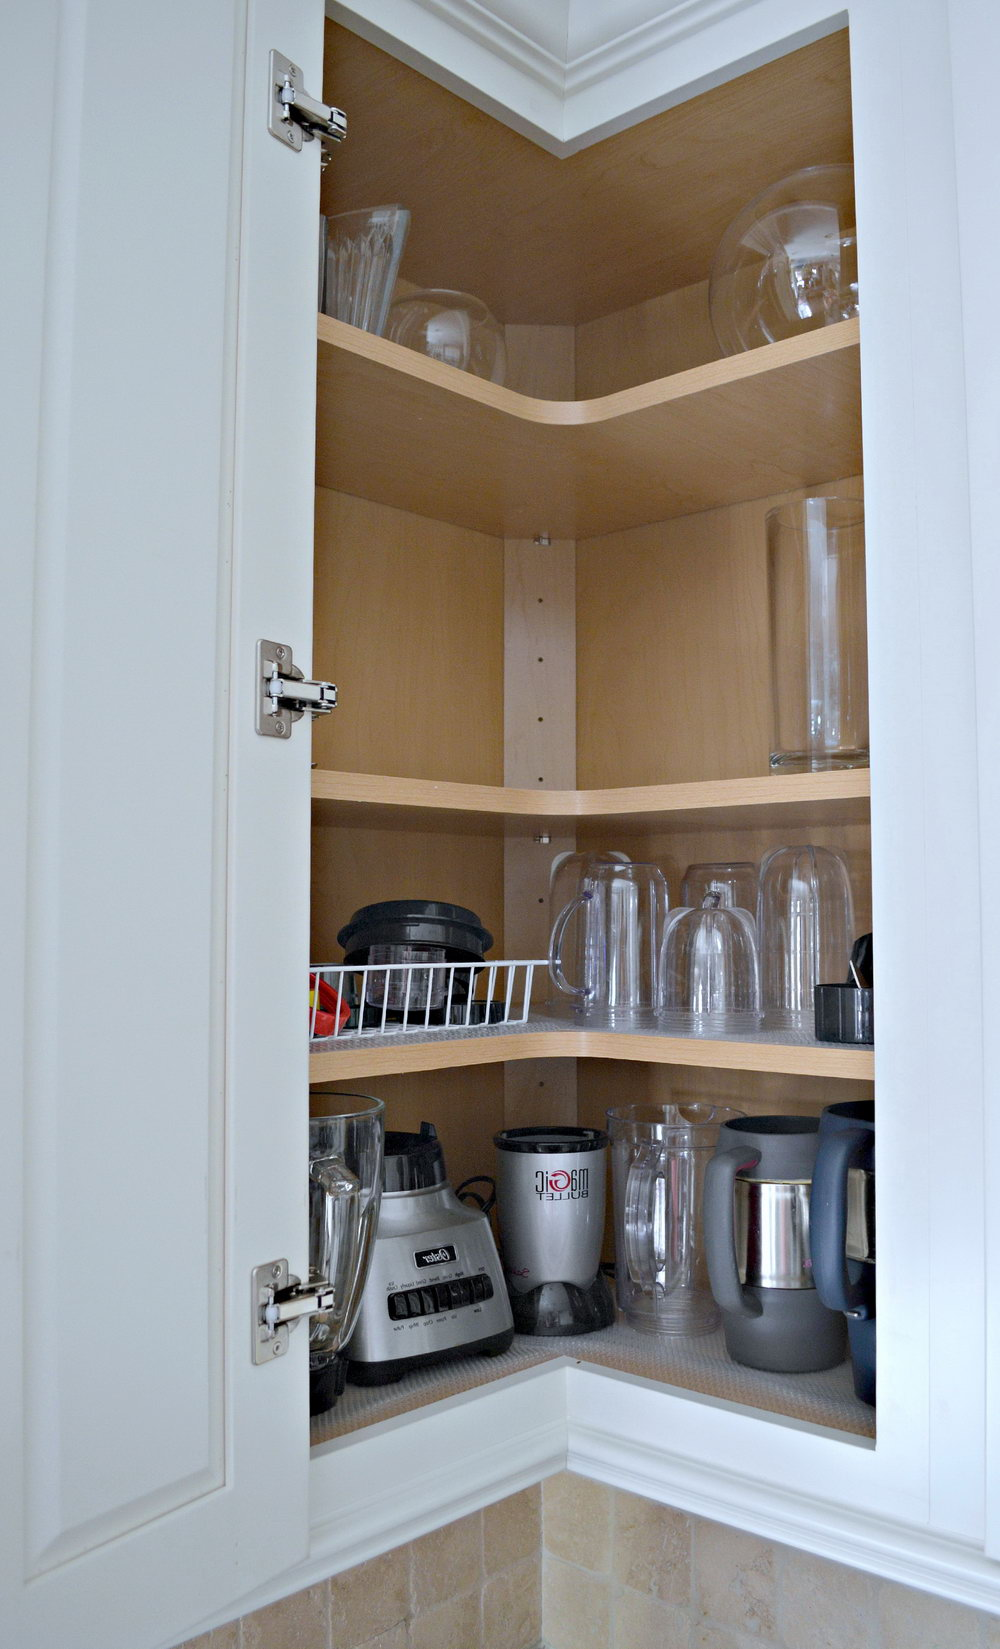 Upper Kitchen Cabinet Organizers